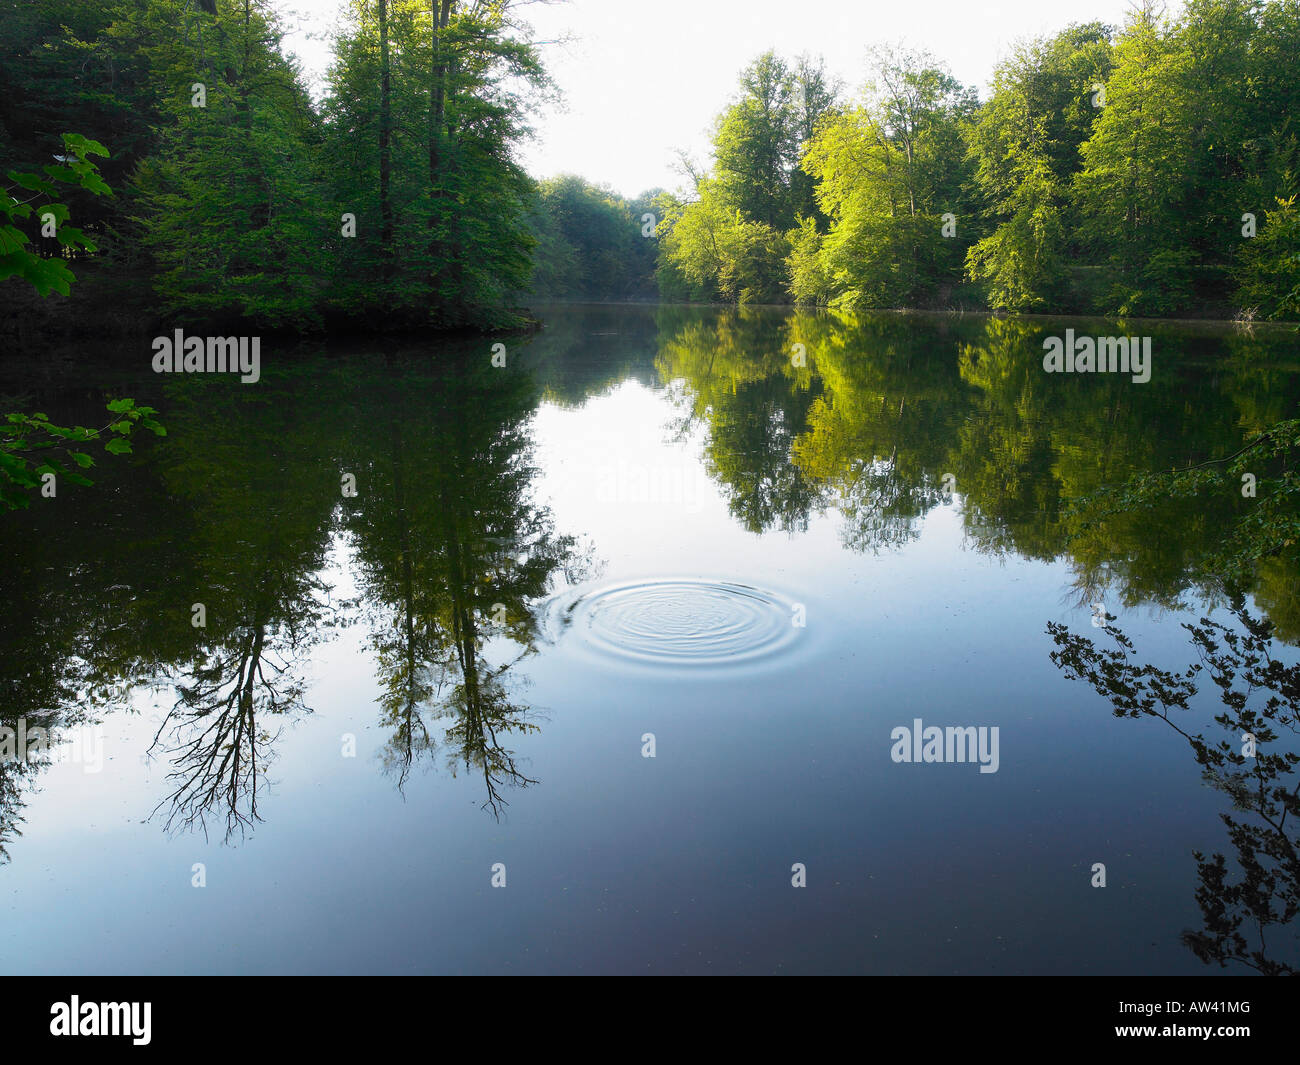 Devinette sur un lac. Photo Stock